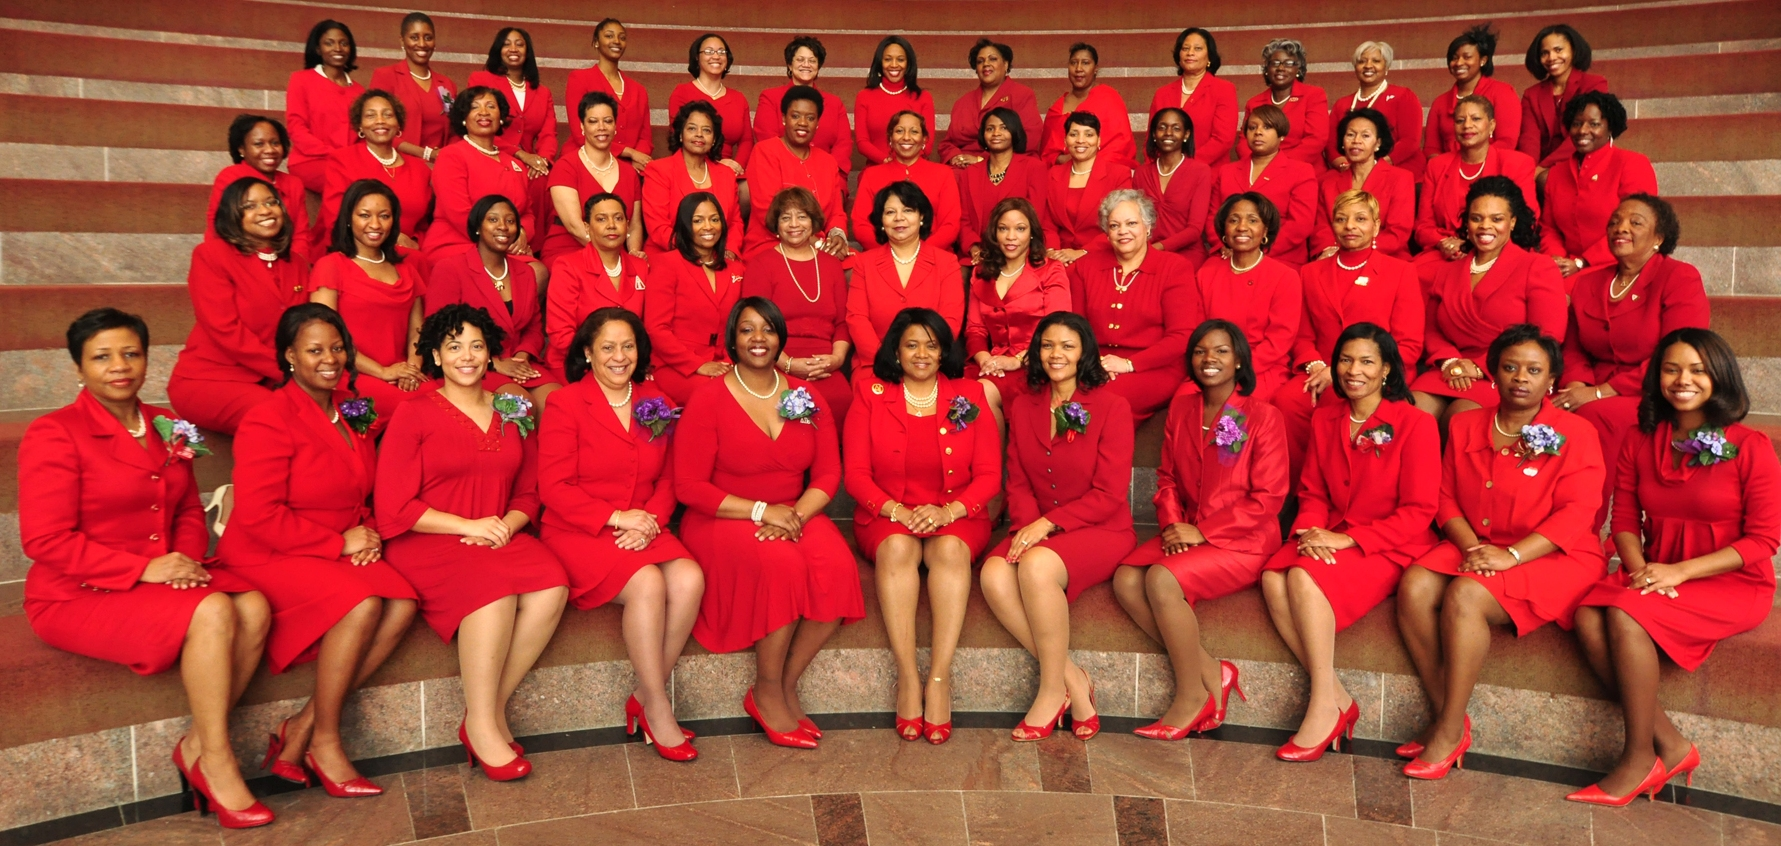 2010chapter picture